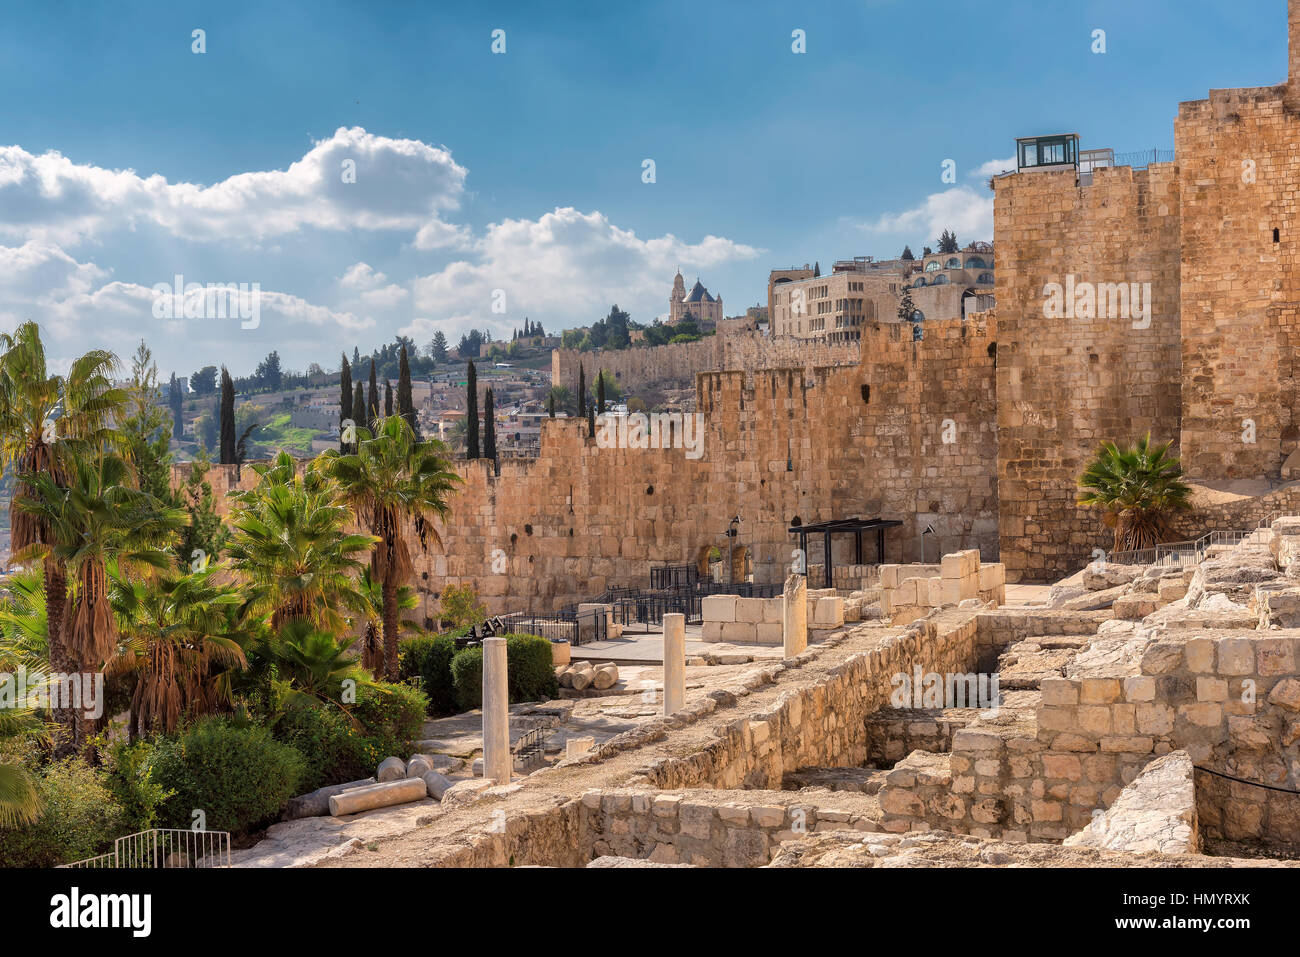 A view of ancient Jerusalem Old City from Temple Mount, Jerusalem, Israel. - Stock Image